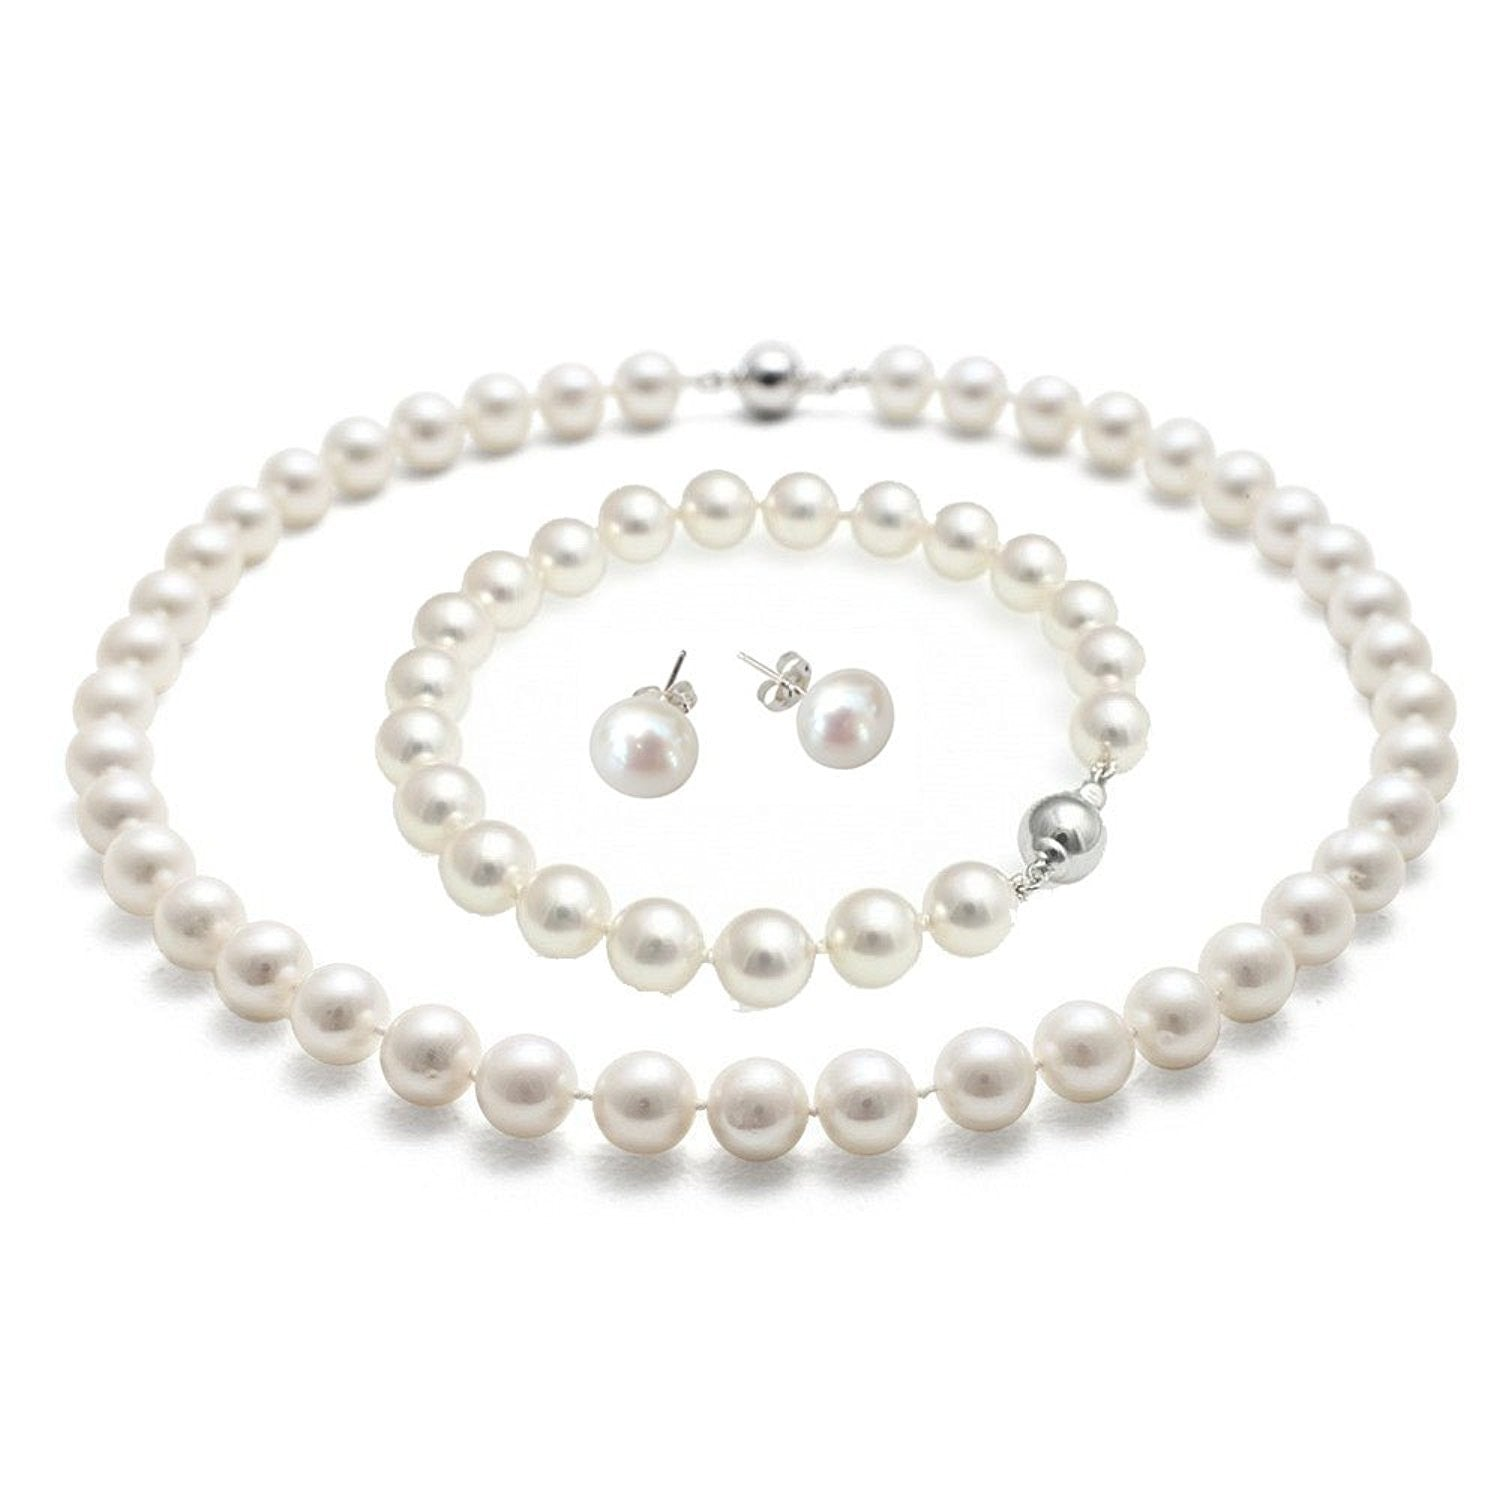 free de by white jewellery on pearlnecklace joia board pearl necklace duty majorca